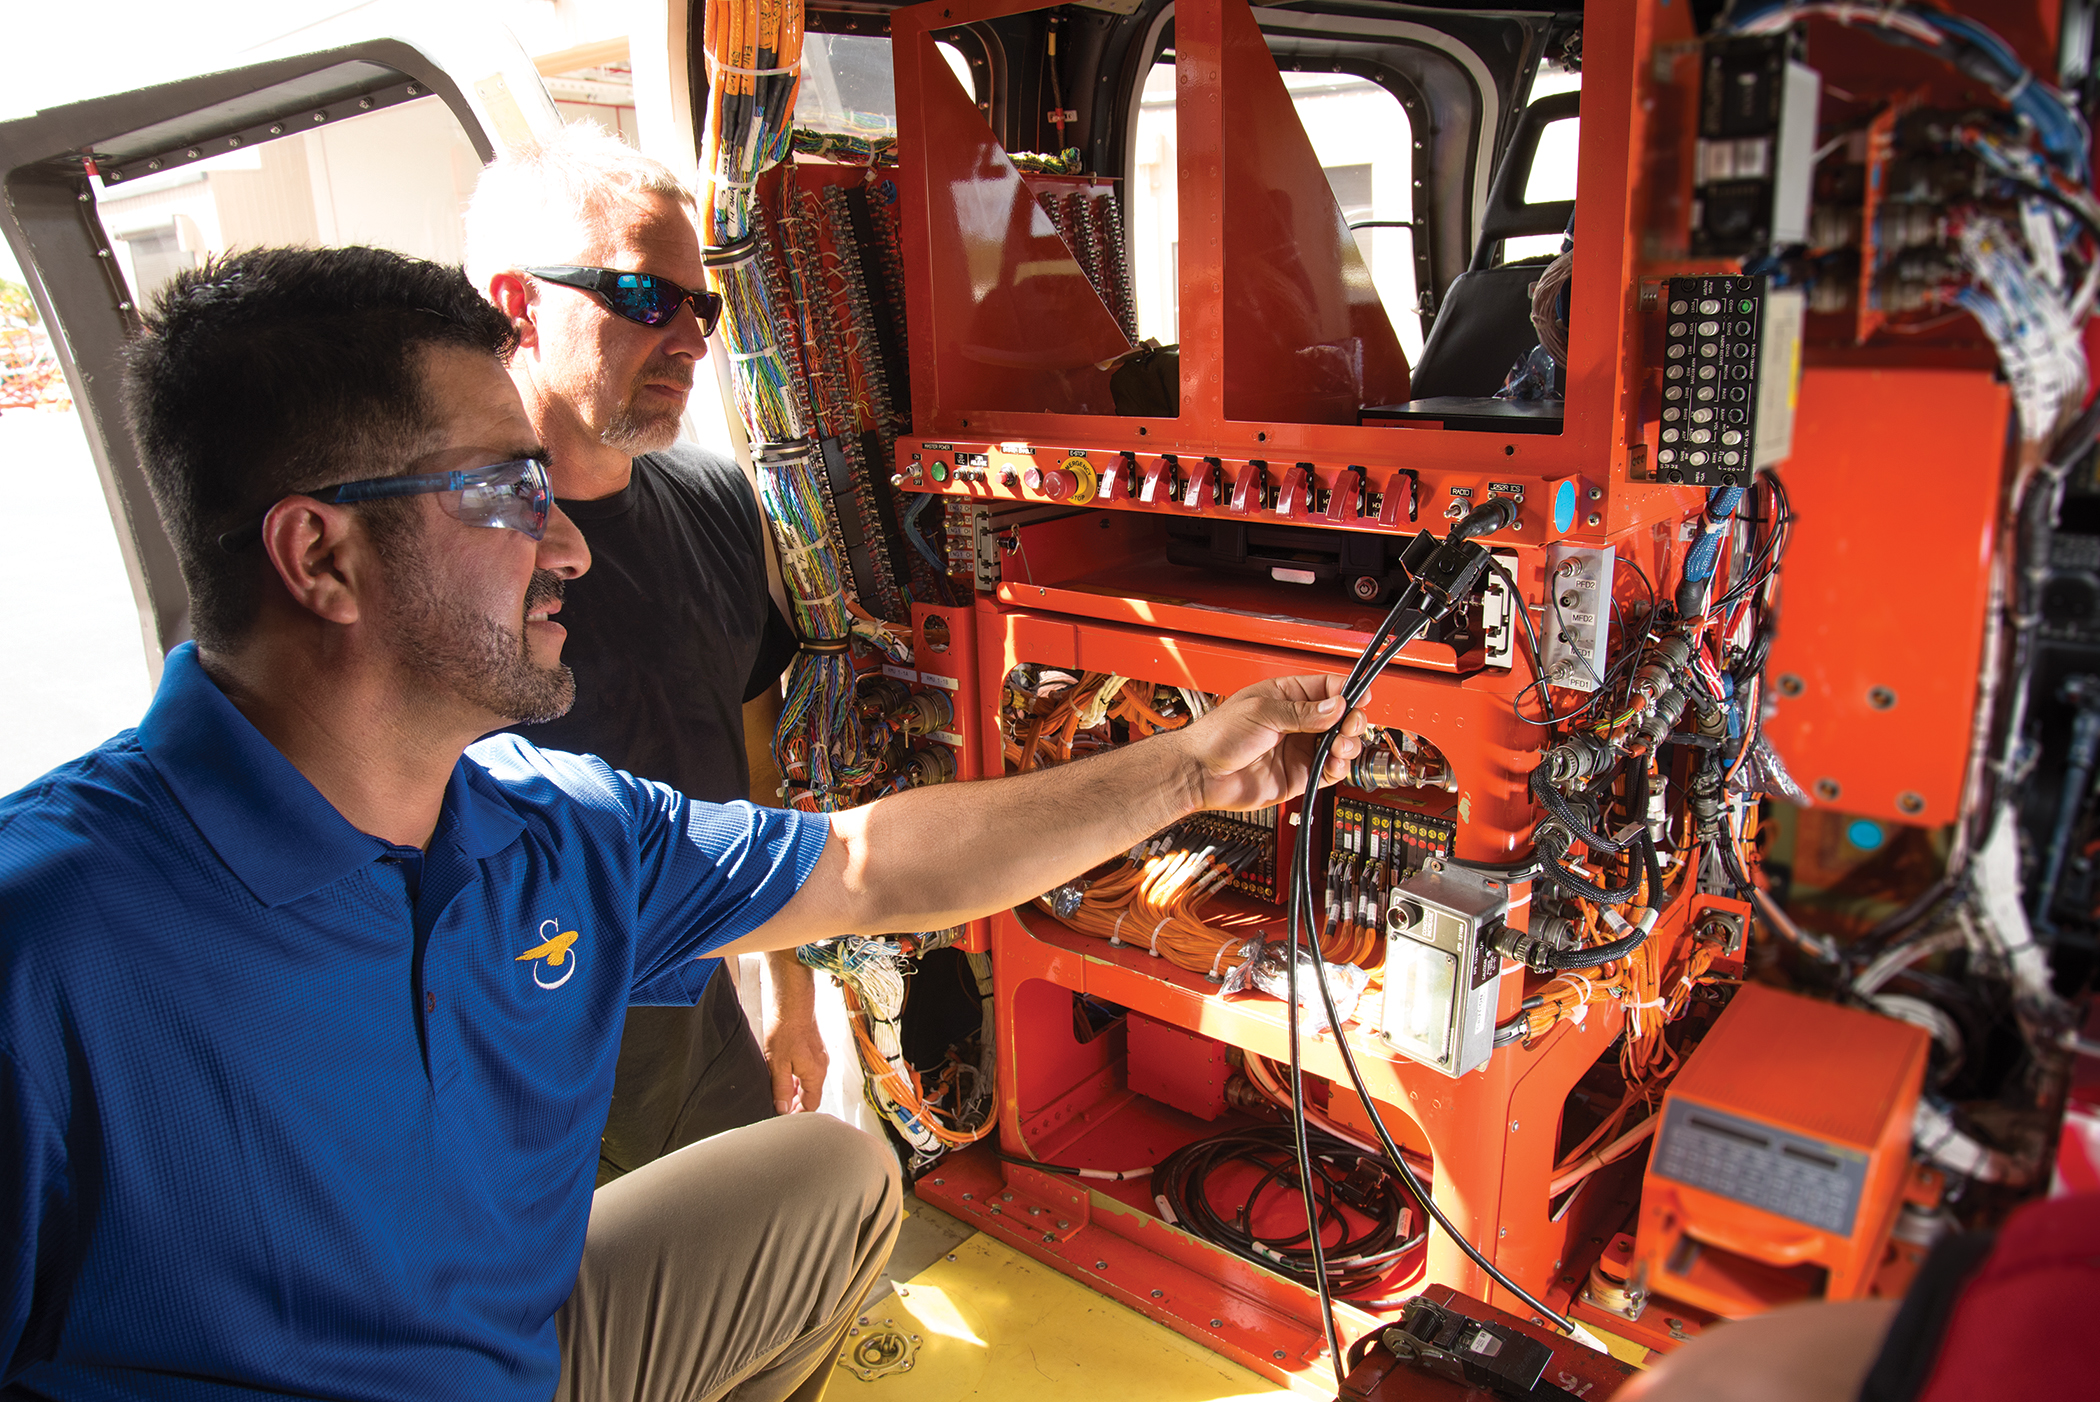 """Former Sikorsky intern and now an employee, PBSC graduate Edwin Carranza works inside the Sikorsky S-76D™ commercial helicopter as Terry Stein, crew chief, observes. """"One of the benefits of the internship was the kind of commitment that Sikorsky has to working with students,"""" says Carranza."""